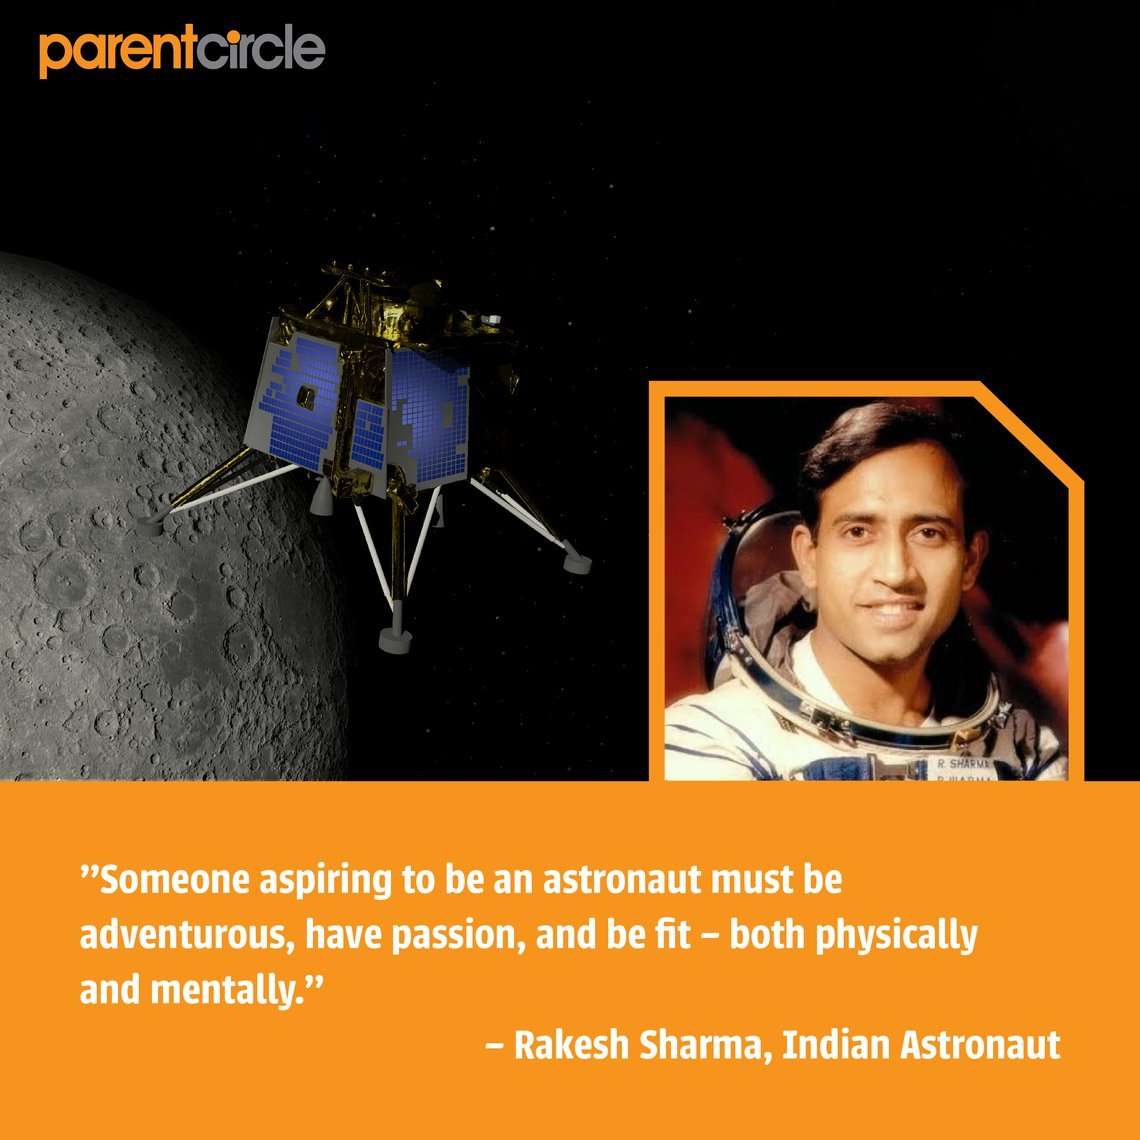 Chandrayaan 2 Live: Latest News And Updates Of India's Moon Mission